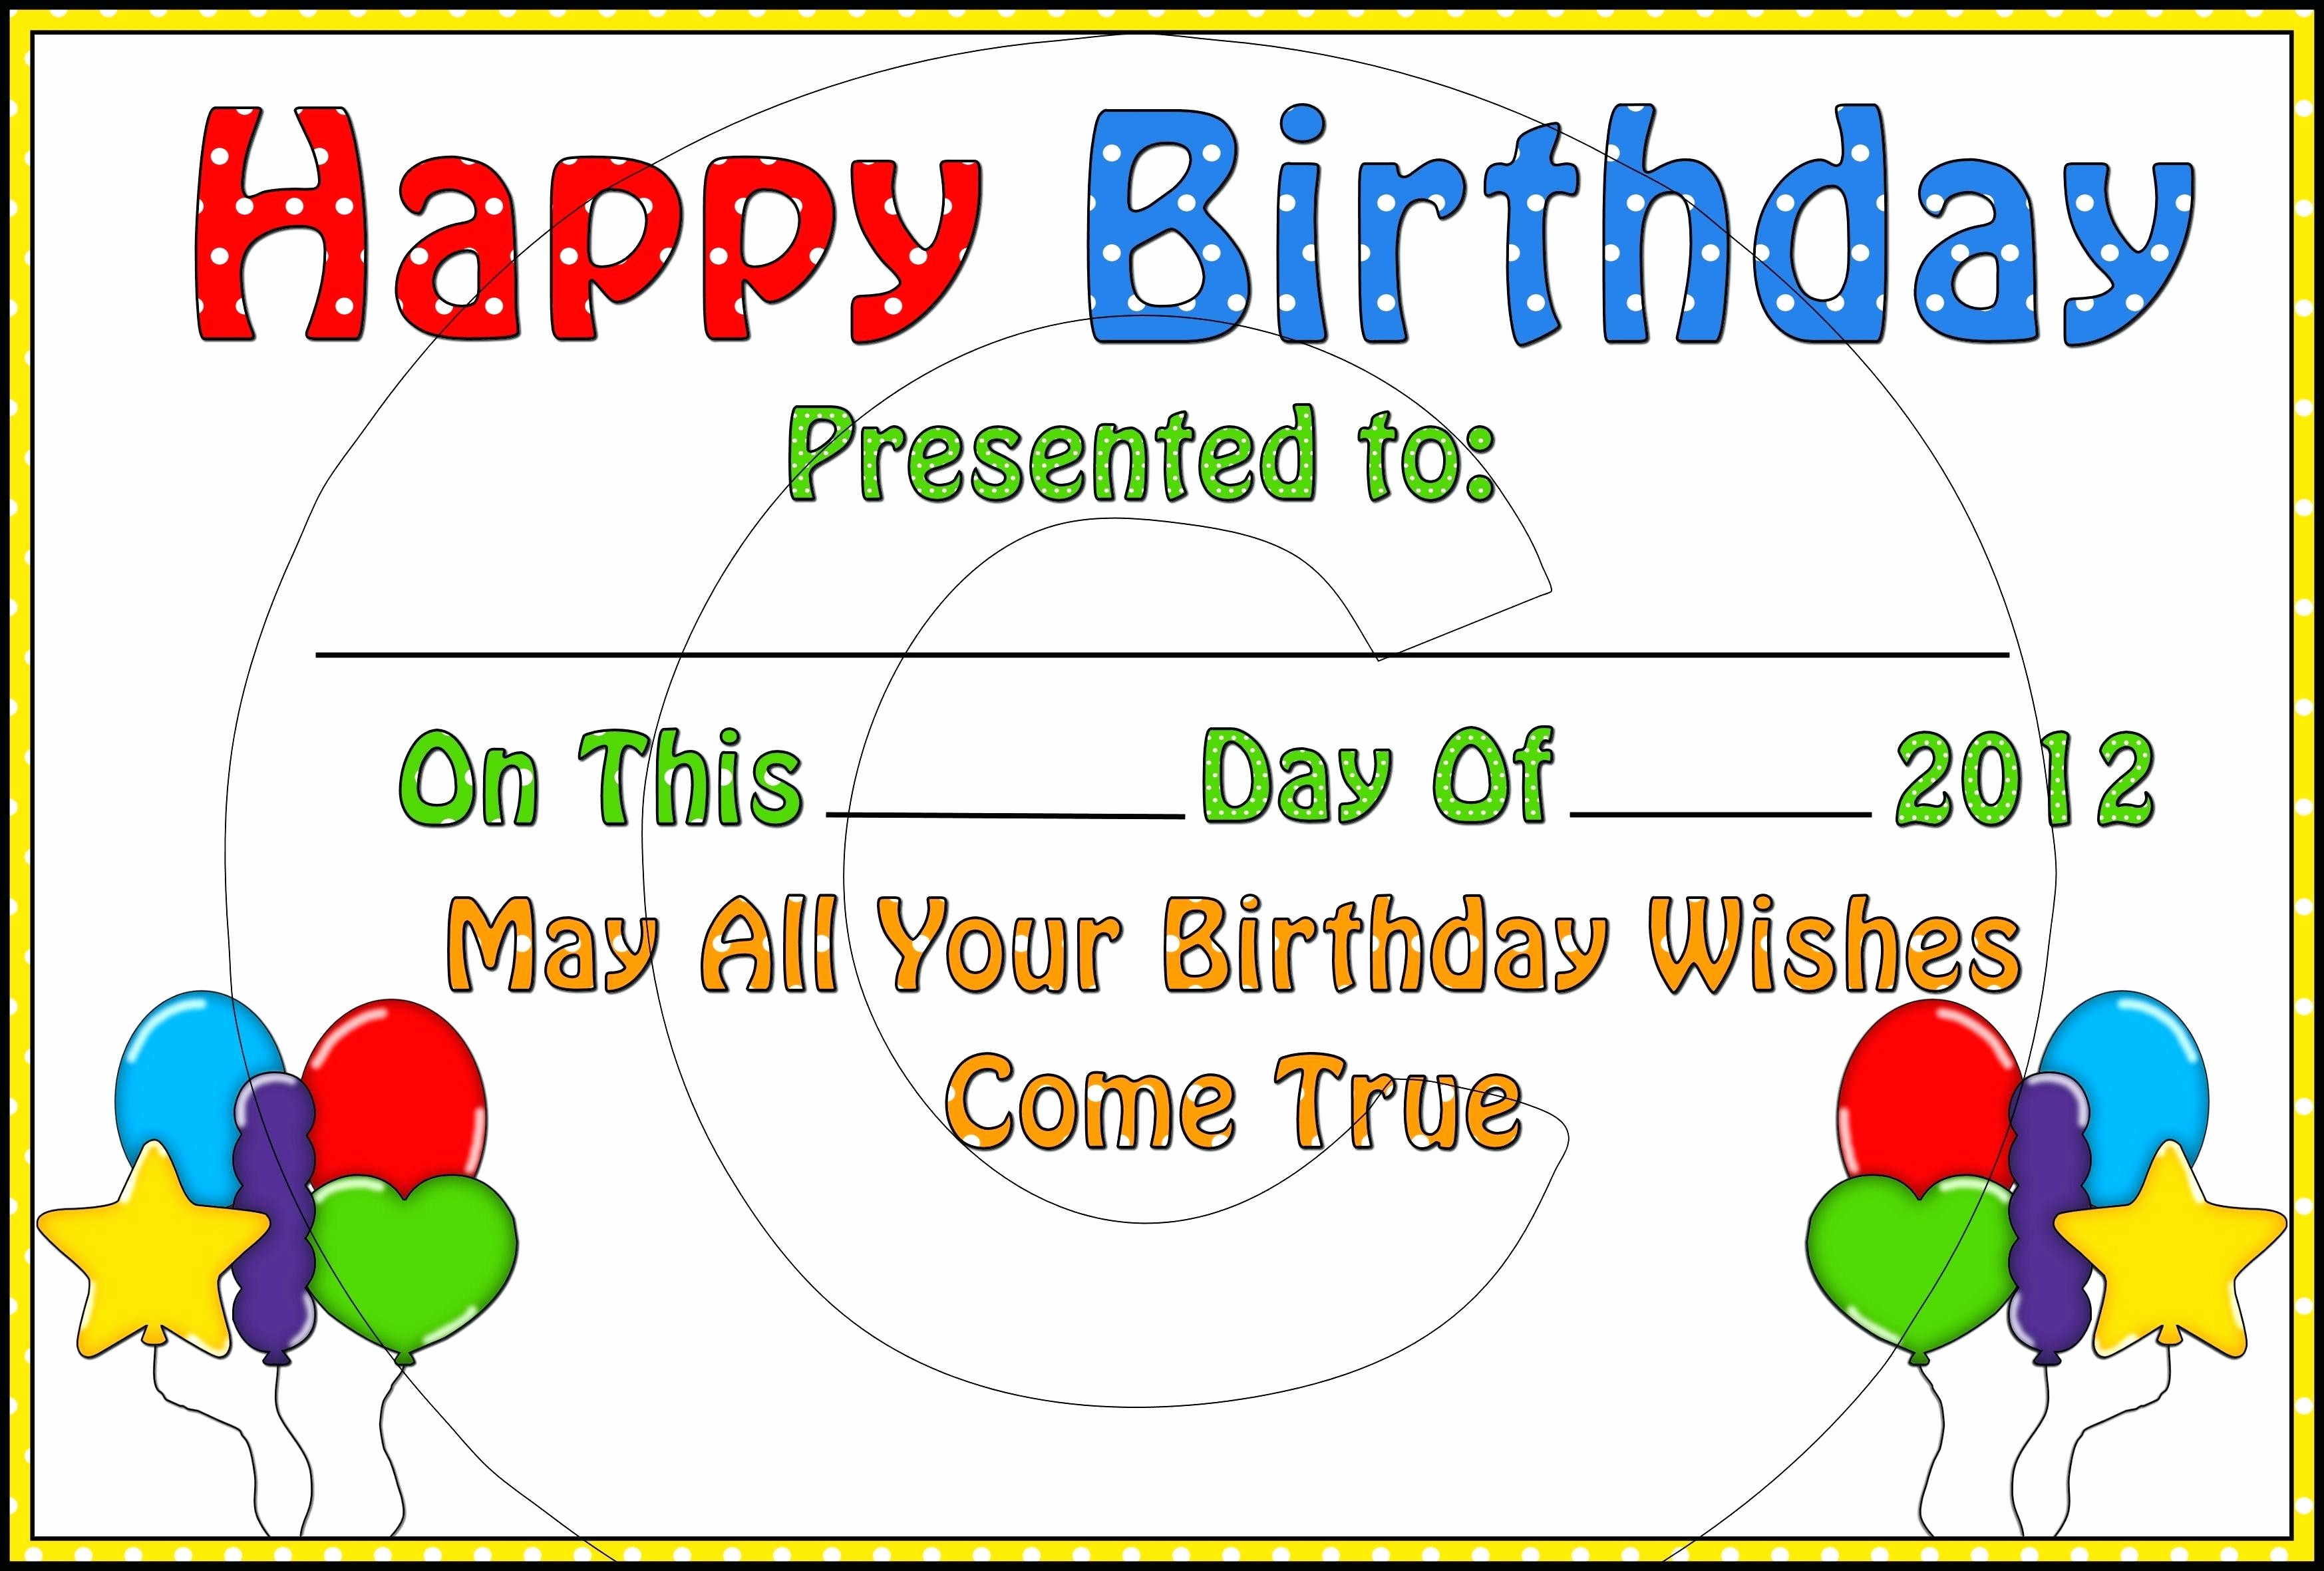 Happy Birthday Certificate Free Printable Luxury Template Happy Birthday Certificate Template